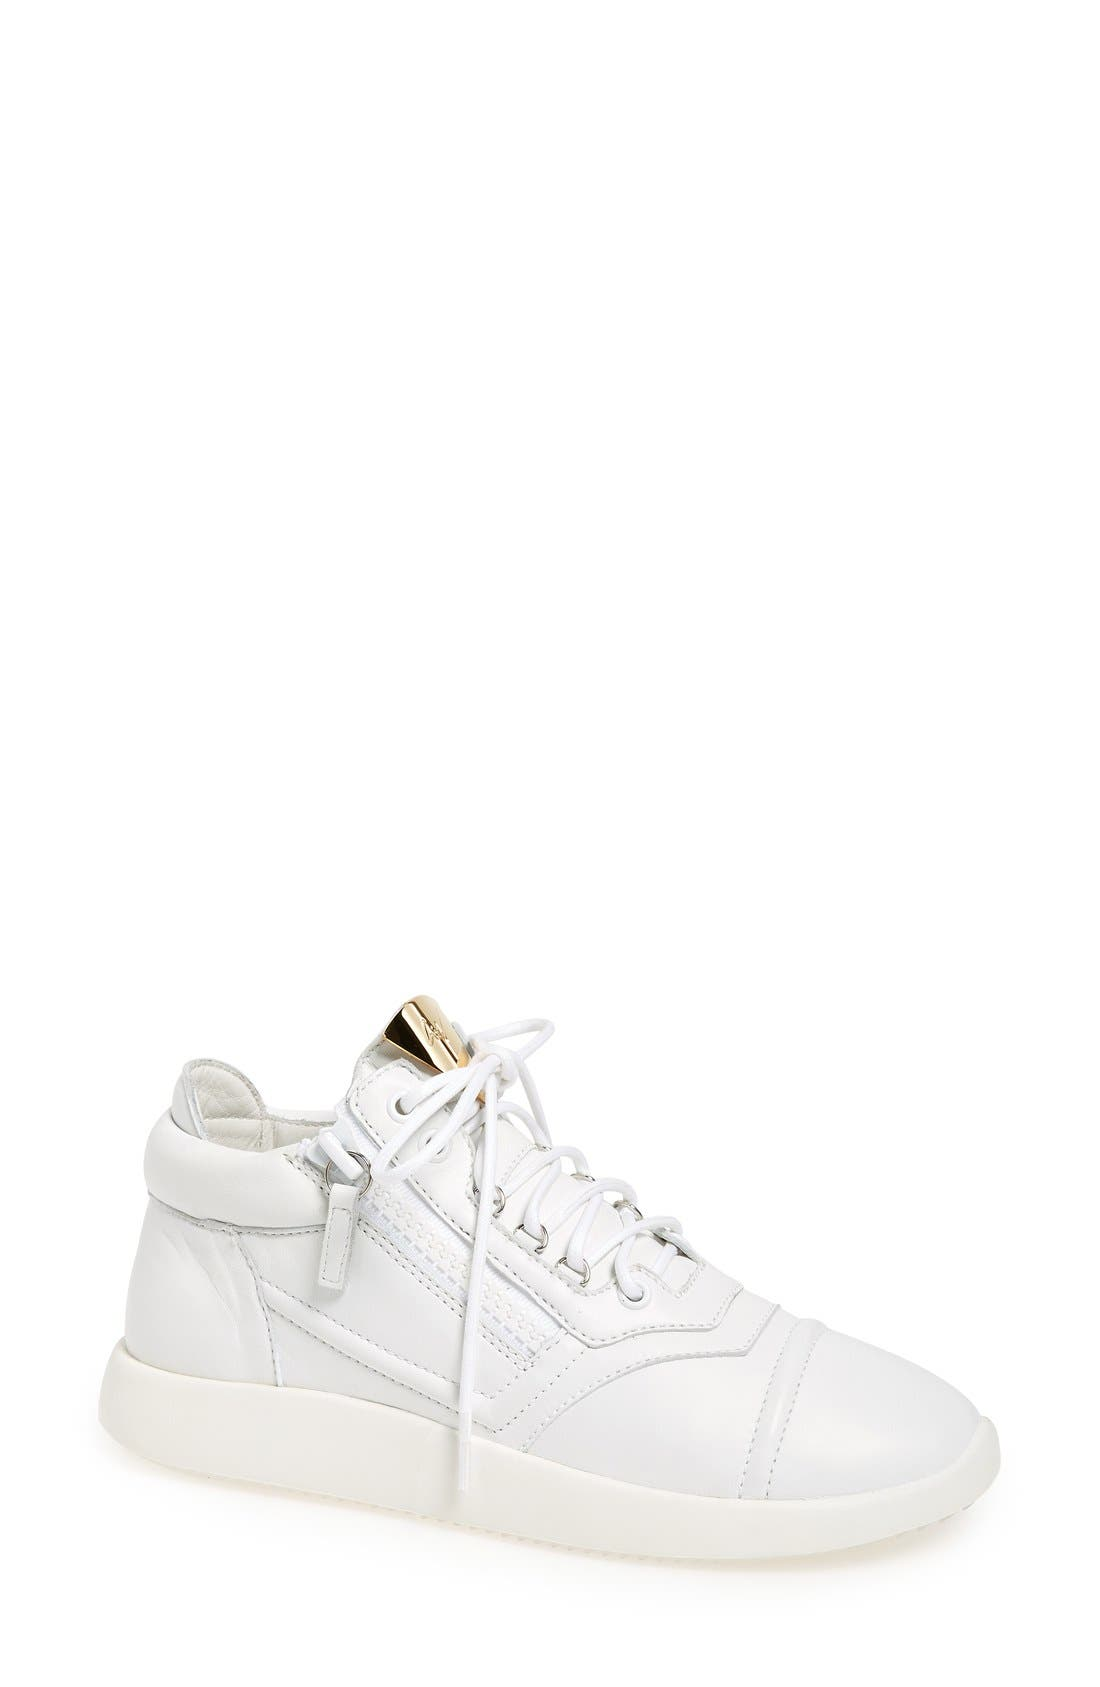 GIUSEPPE ZANOTTI Side Zip Low Top Sneaker